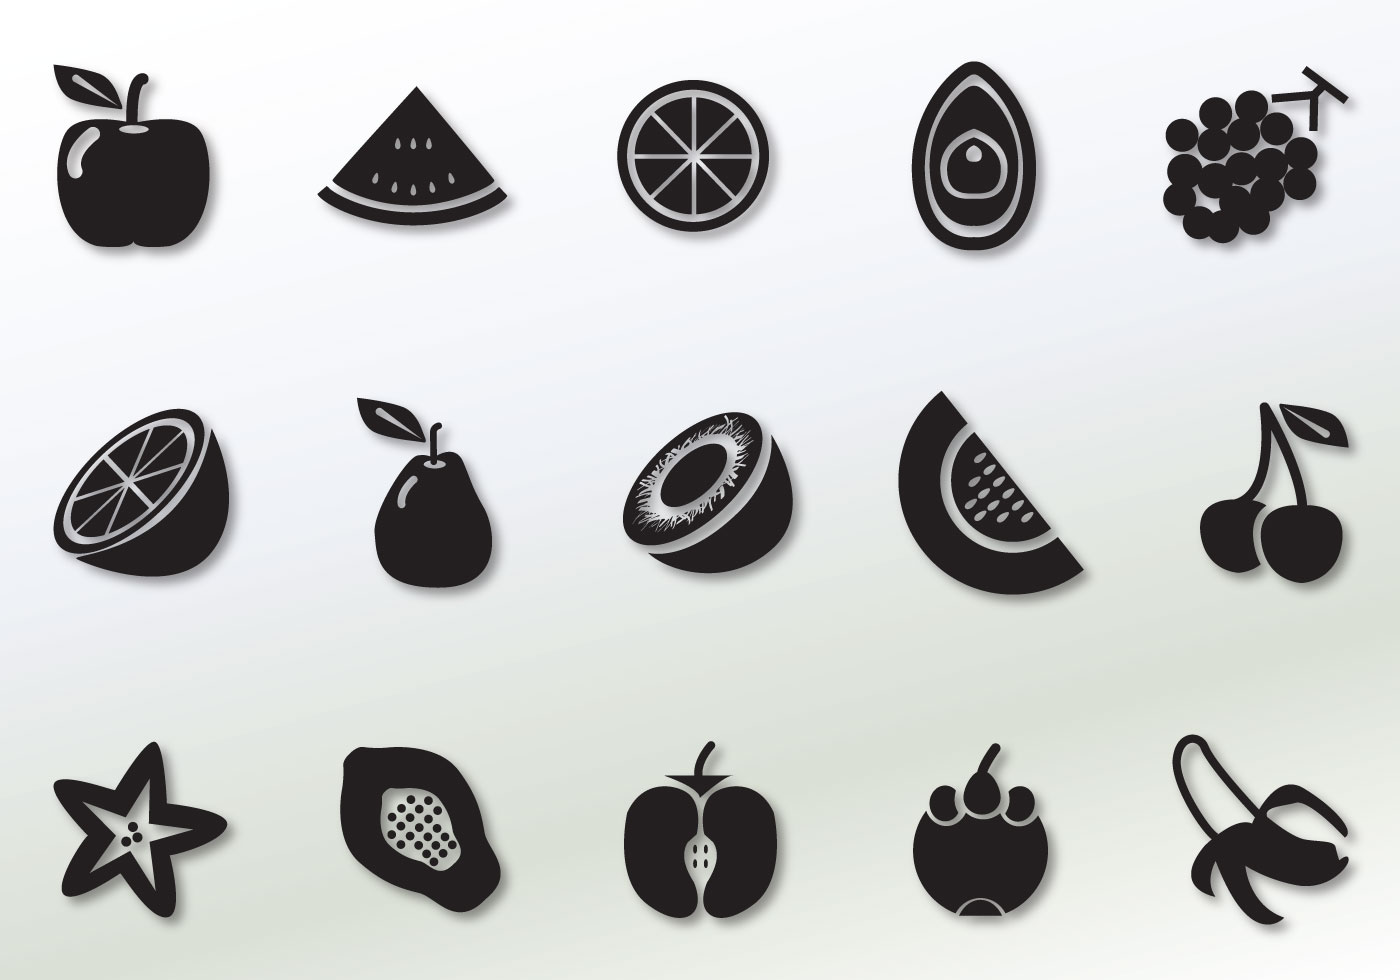 Solid Fruit Vector Icons - Download Free Vector Art, Stock ...